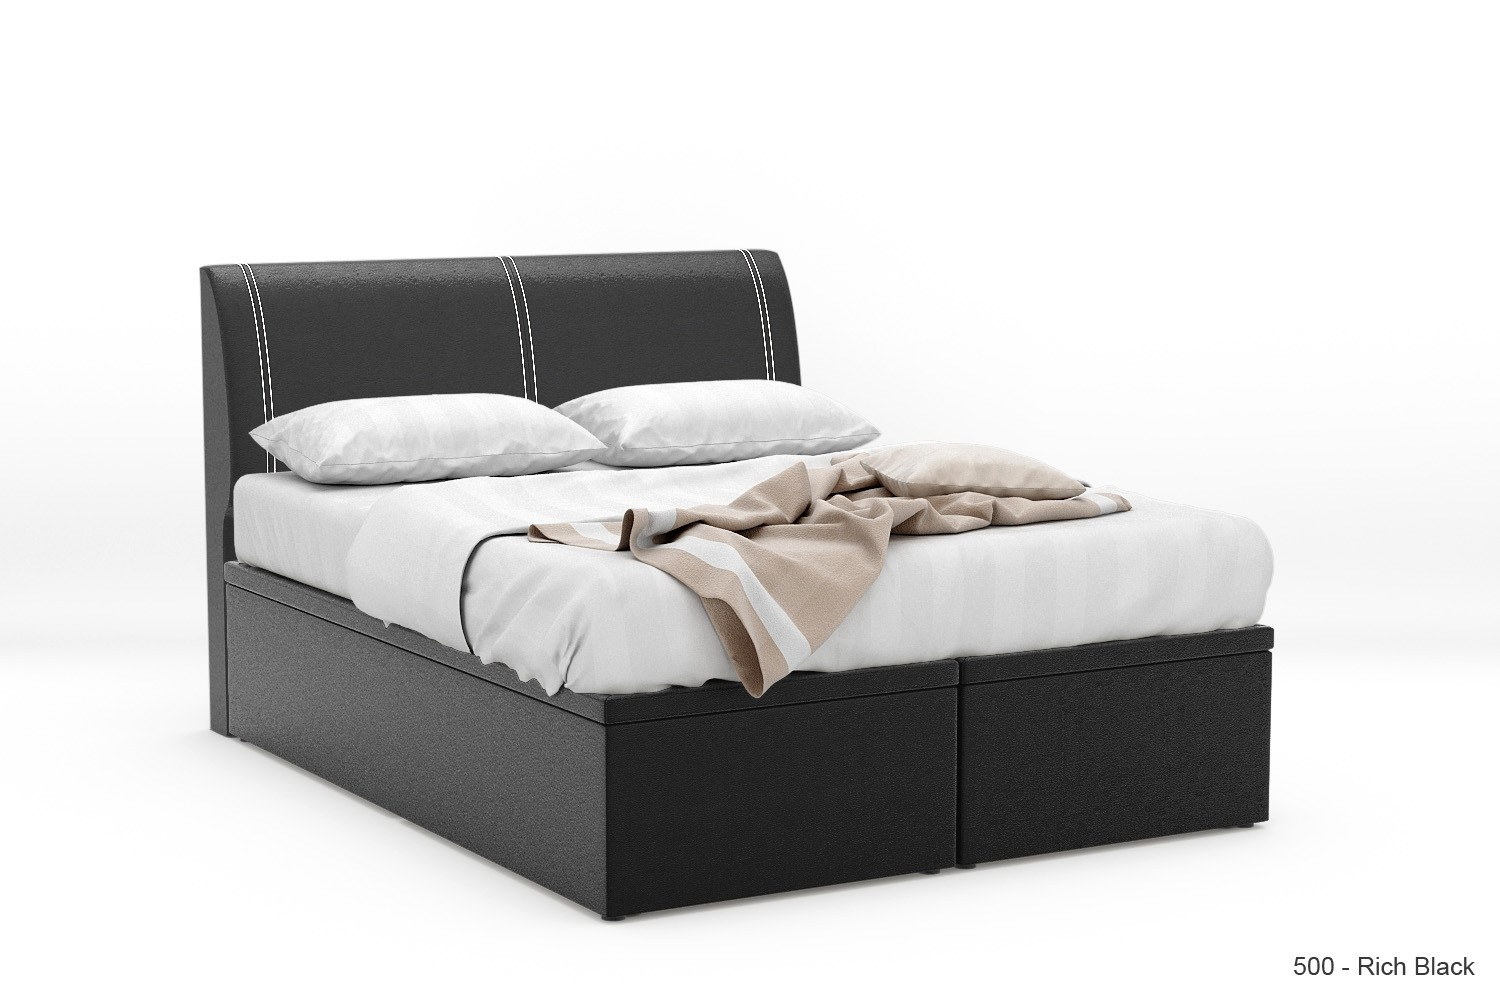 1 Stock Offer: Quadtough Faux Leather Storage Bed Frame (Super ...